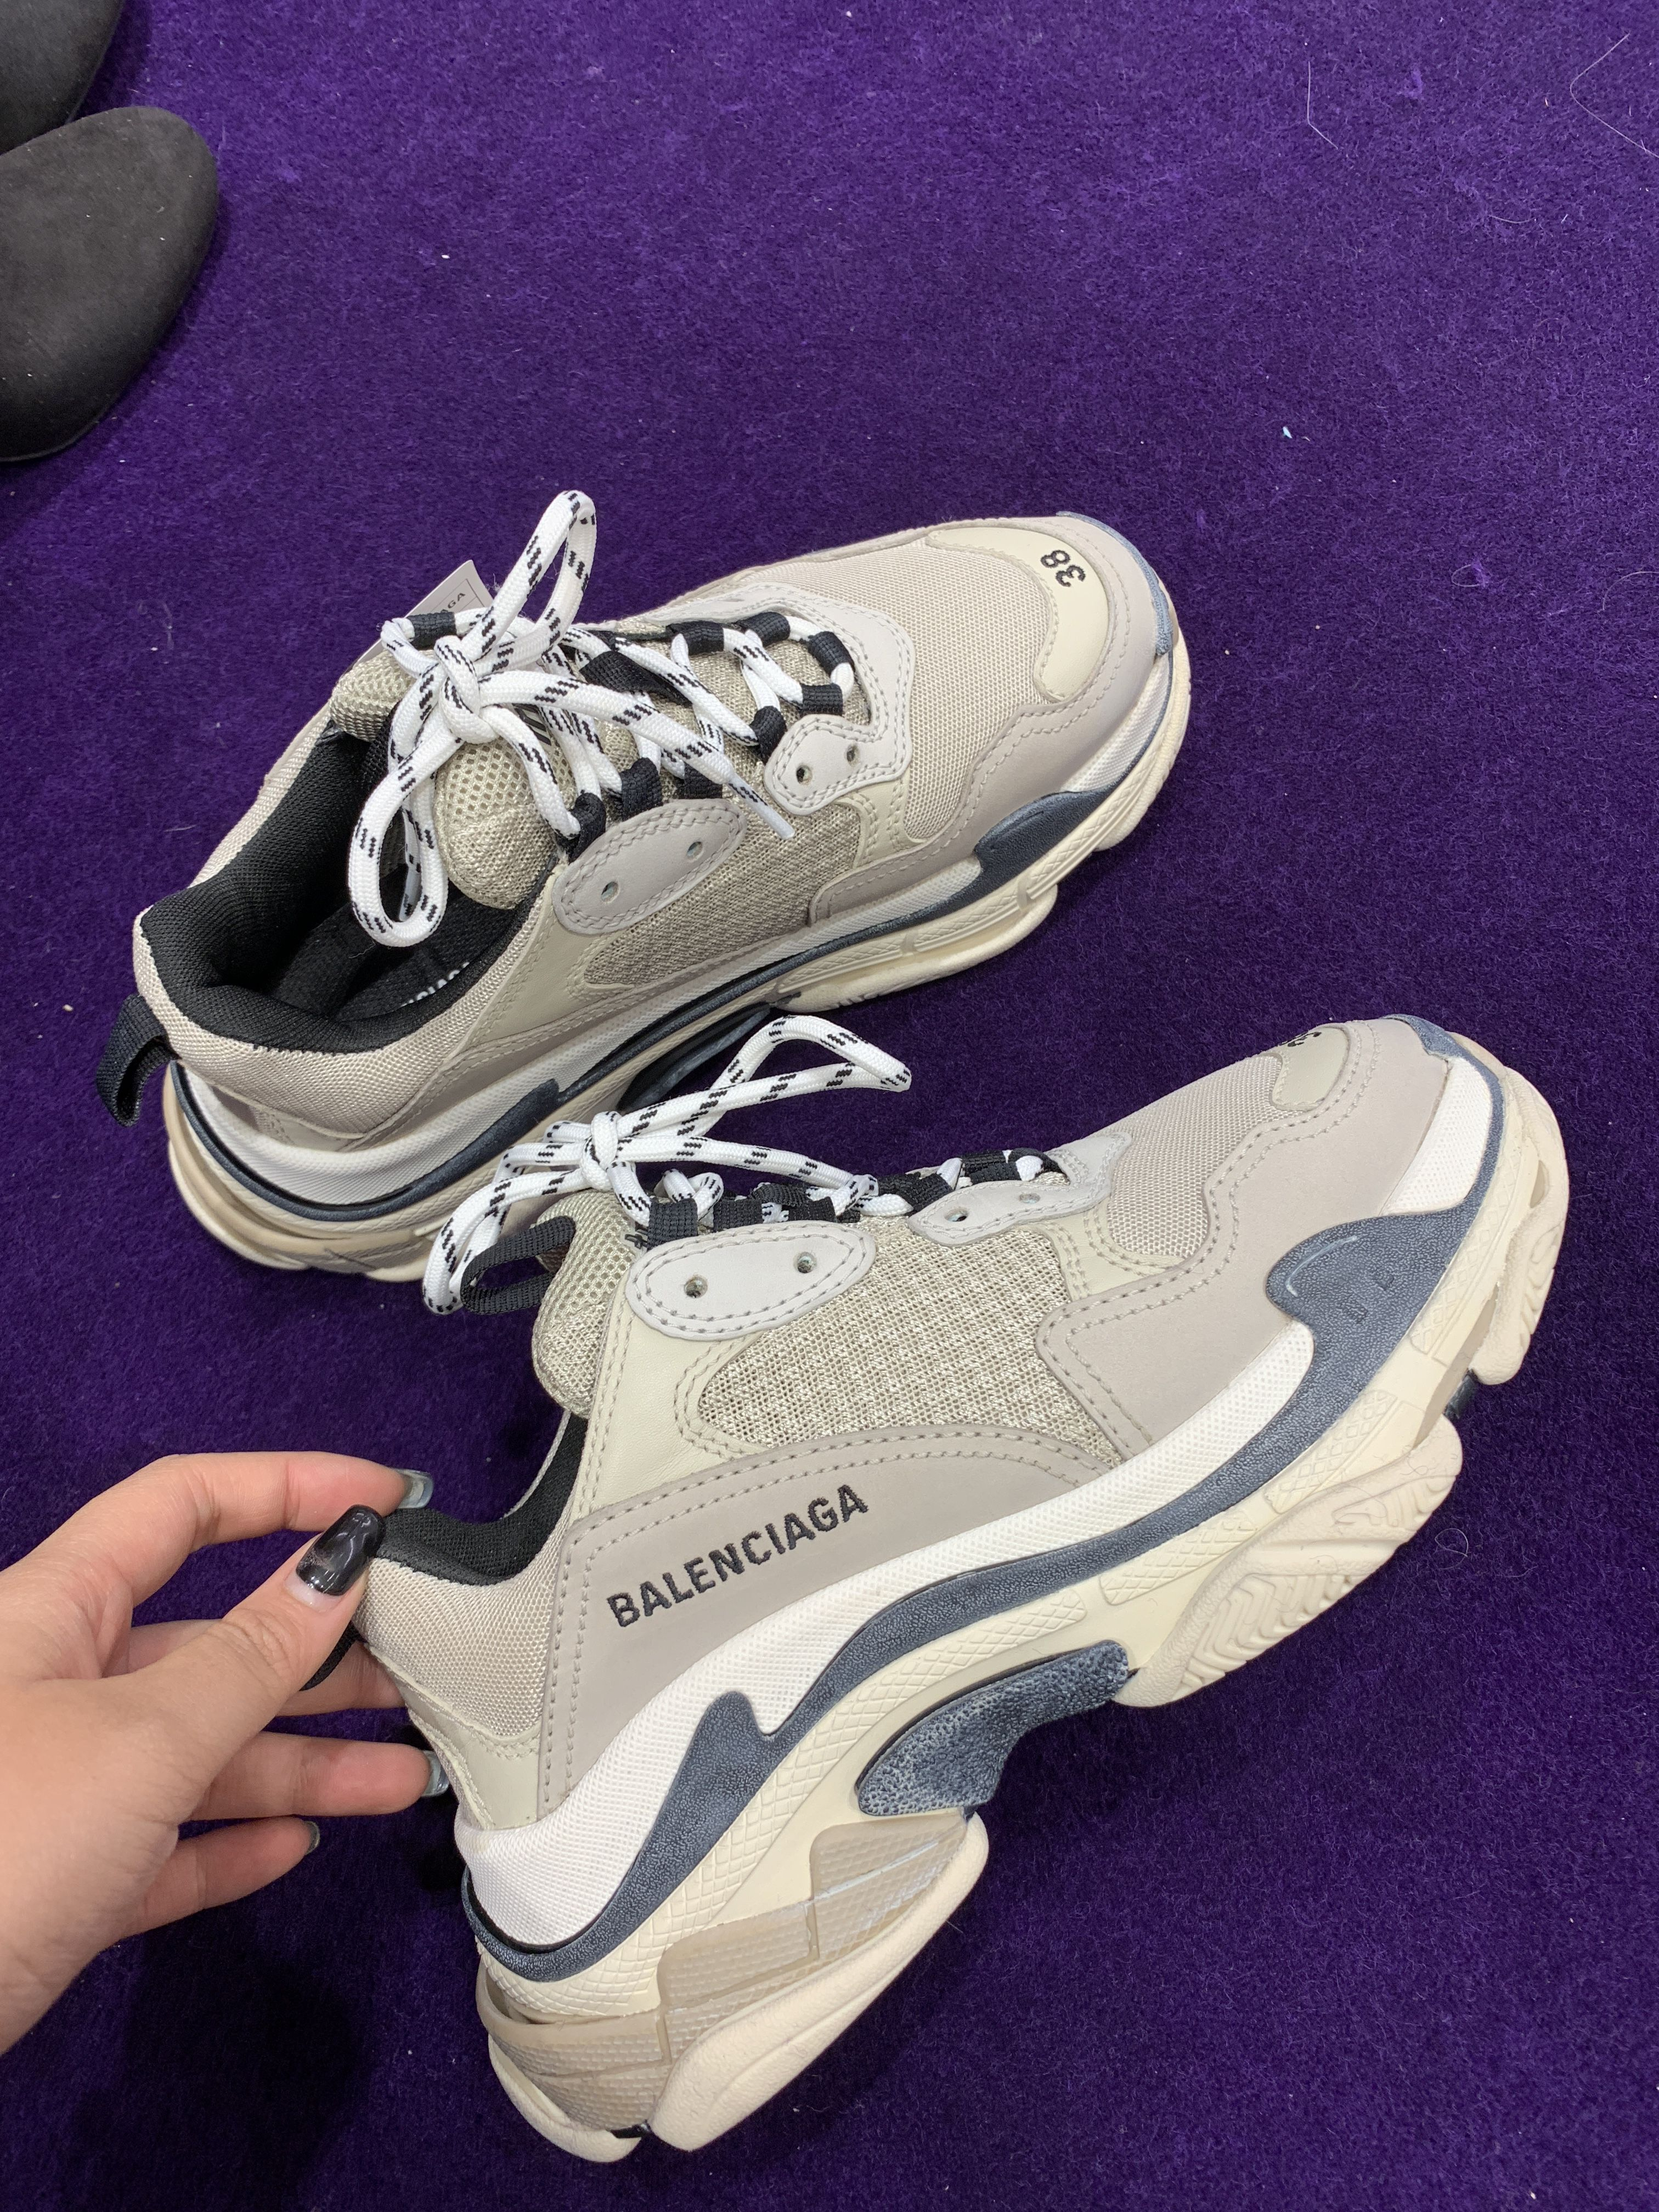 premium selection 5cfcd ef38d Balenciaga tripple s for women ❣️new colour November 2018 ...